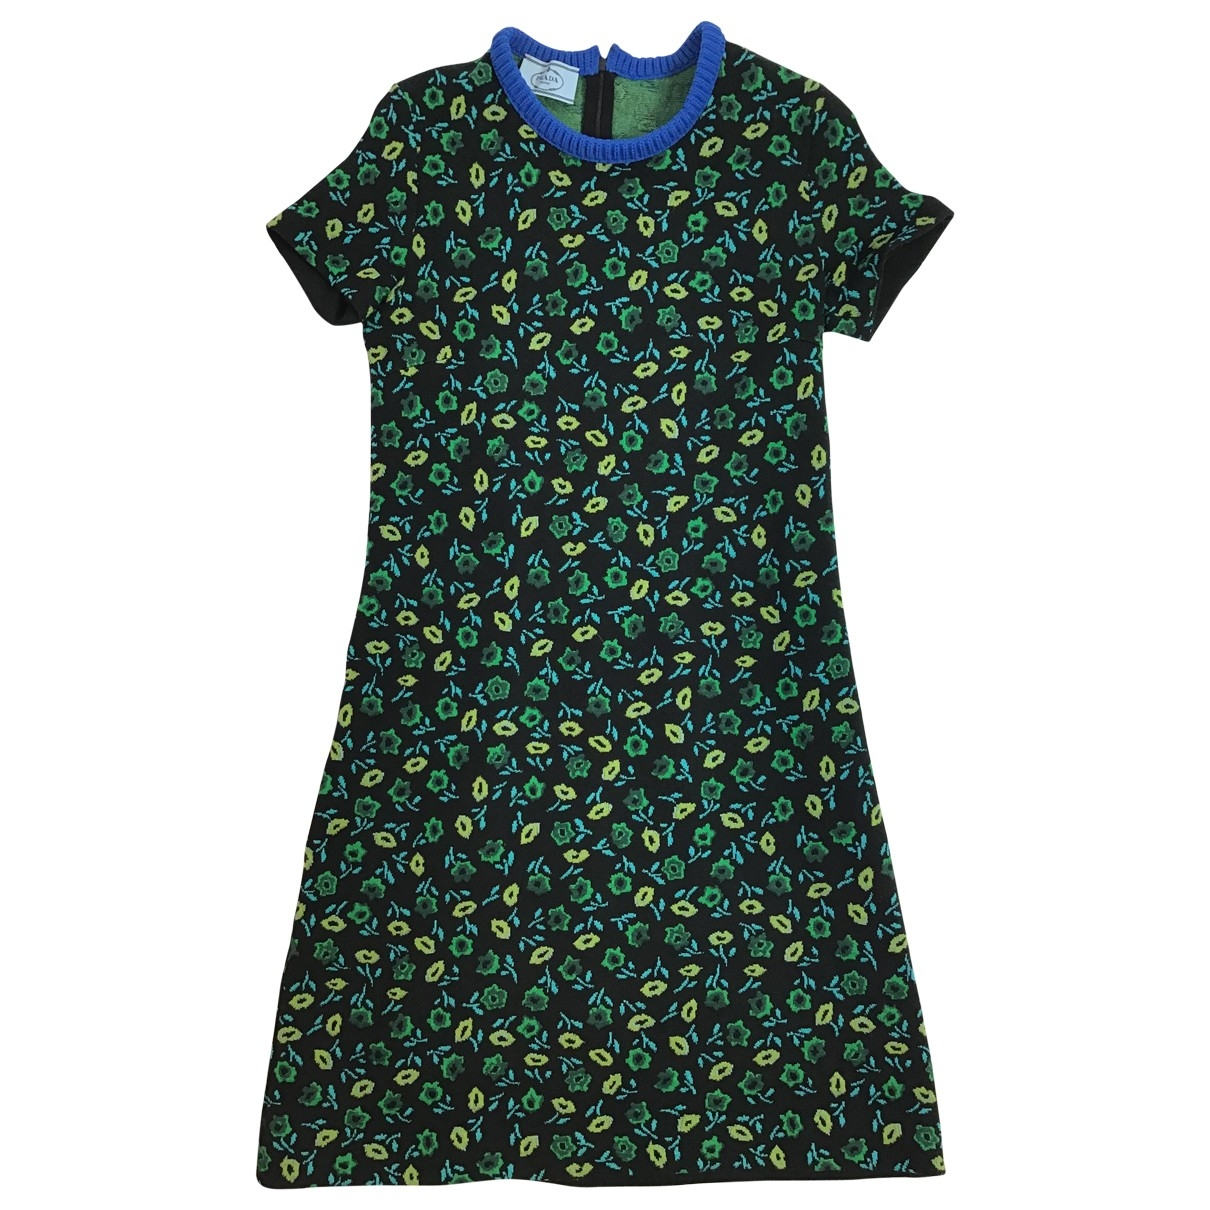 Prada \N Green dress for Women 42 IT